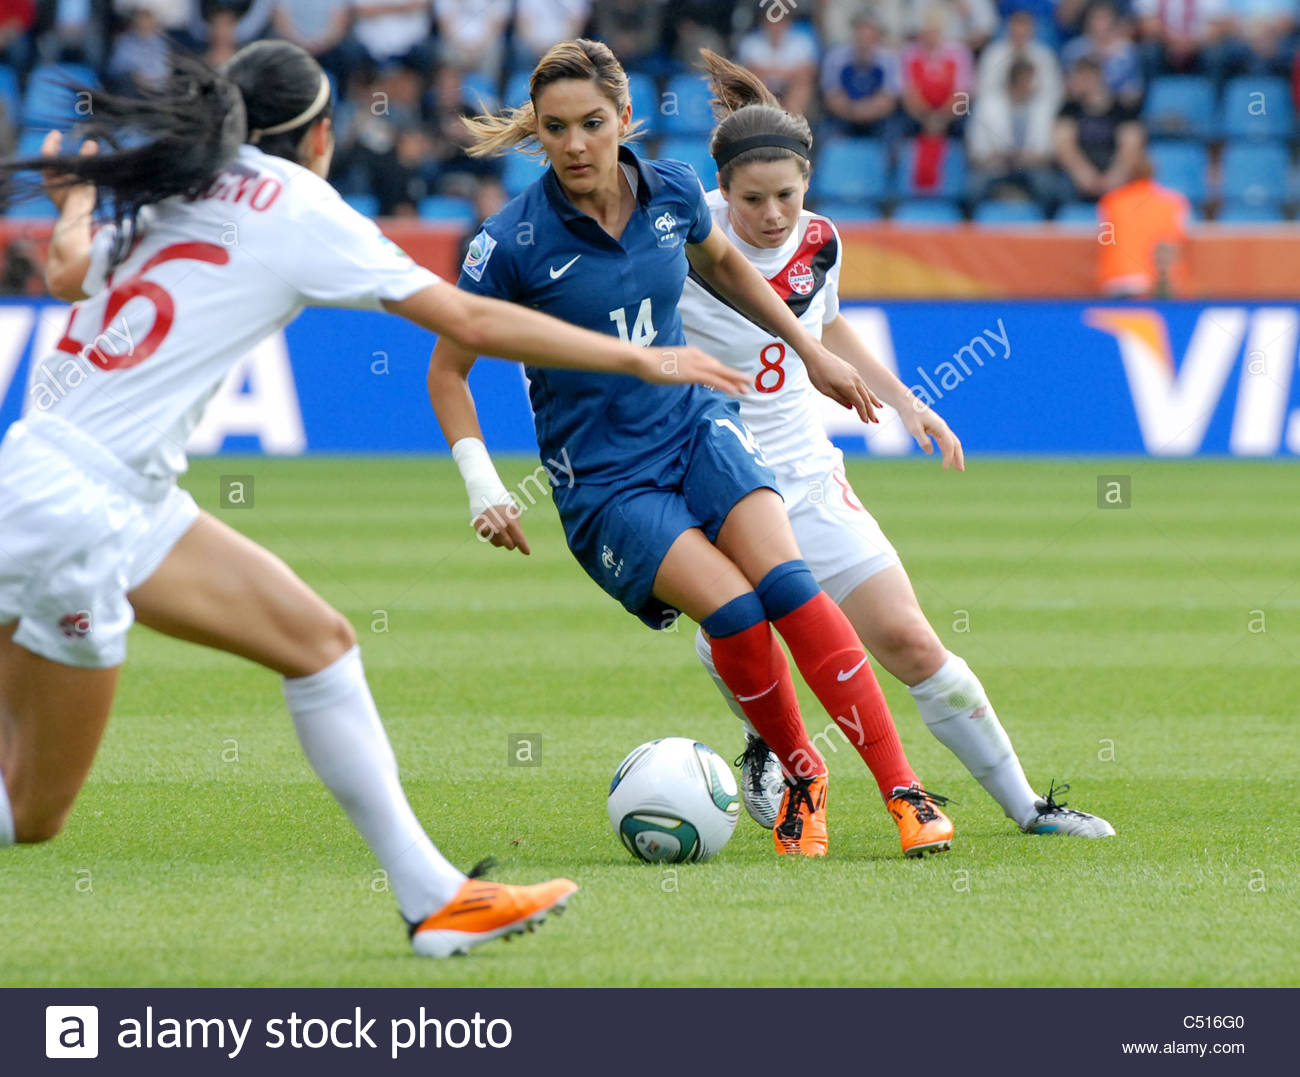 french womens team football stock photos  u0026 french womens team football stock images